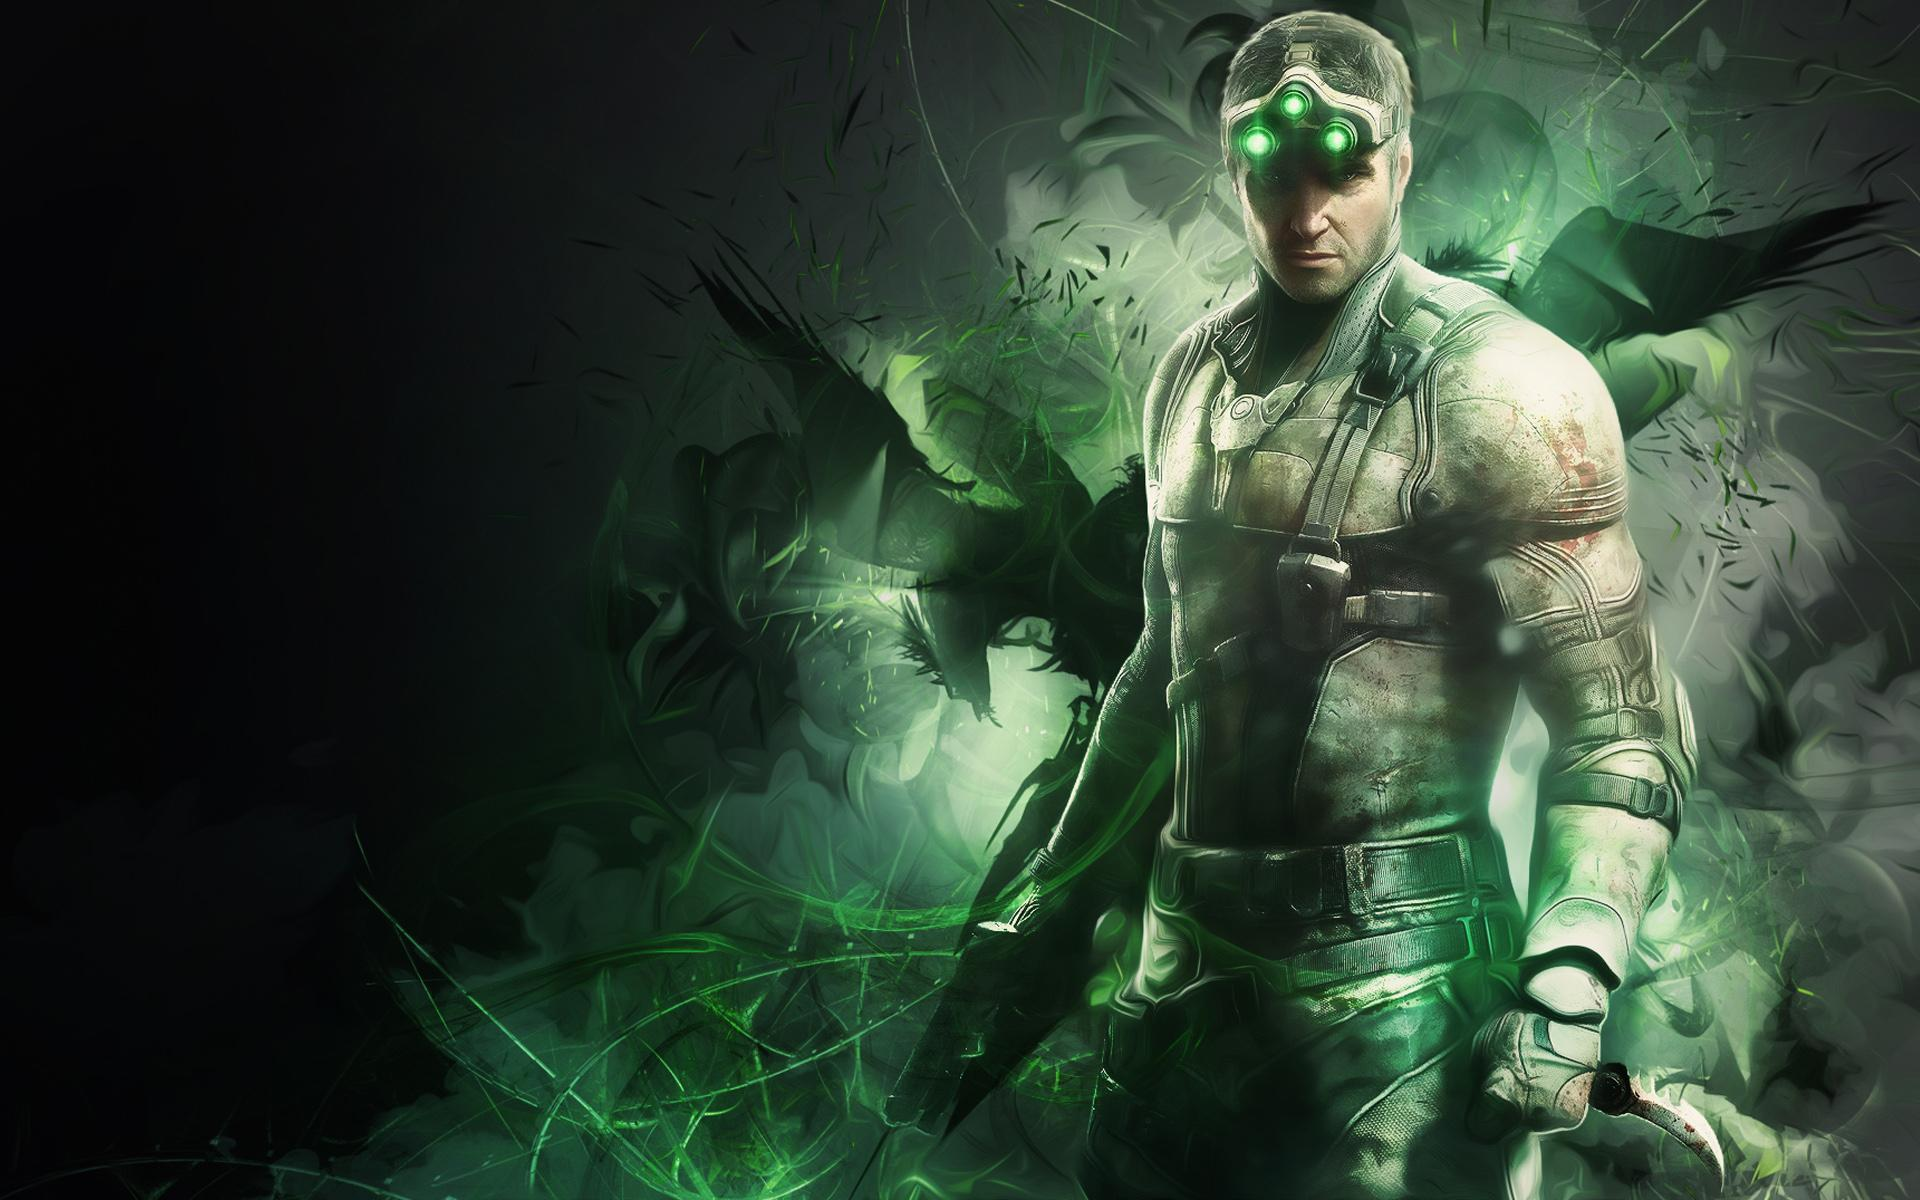 Green Abstract Diablo Halo 3 1080p Wallpaper Wallpaper